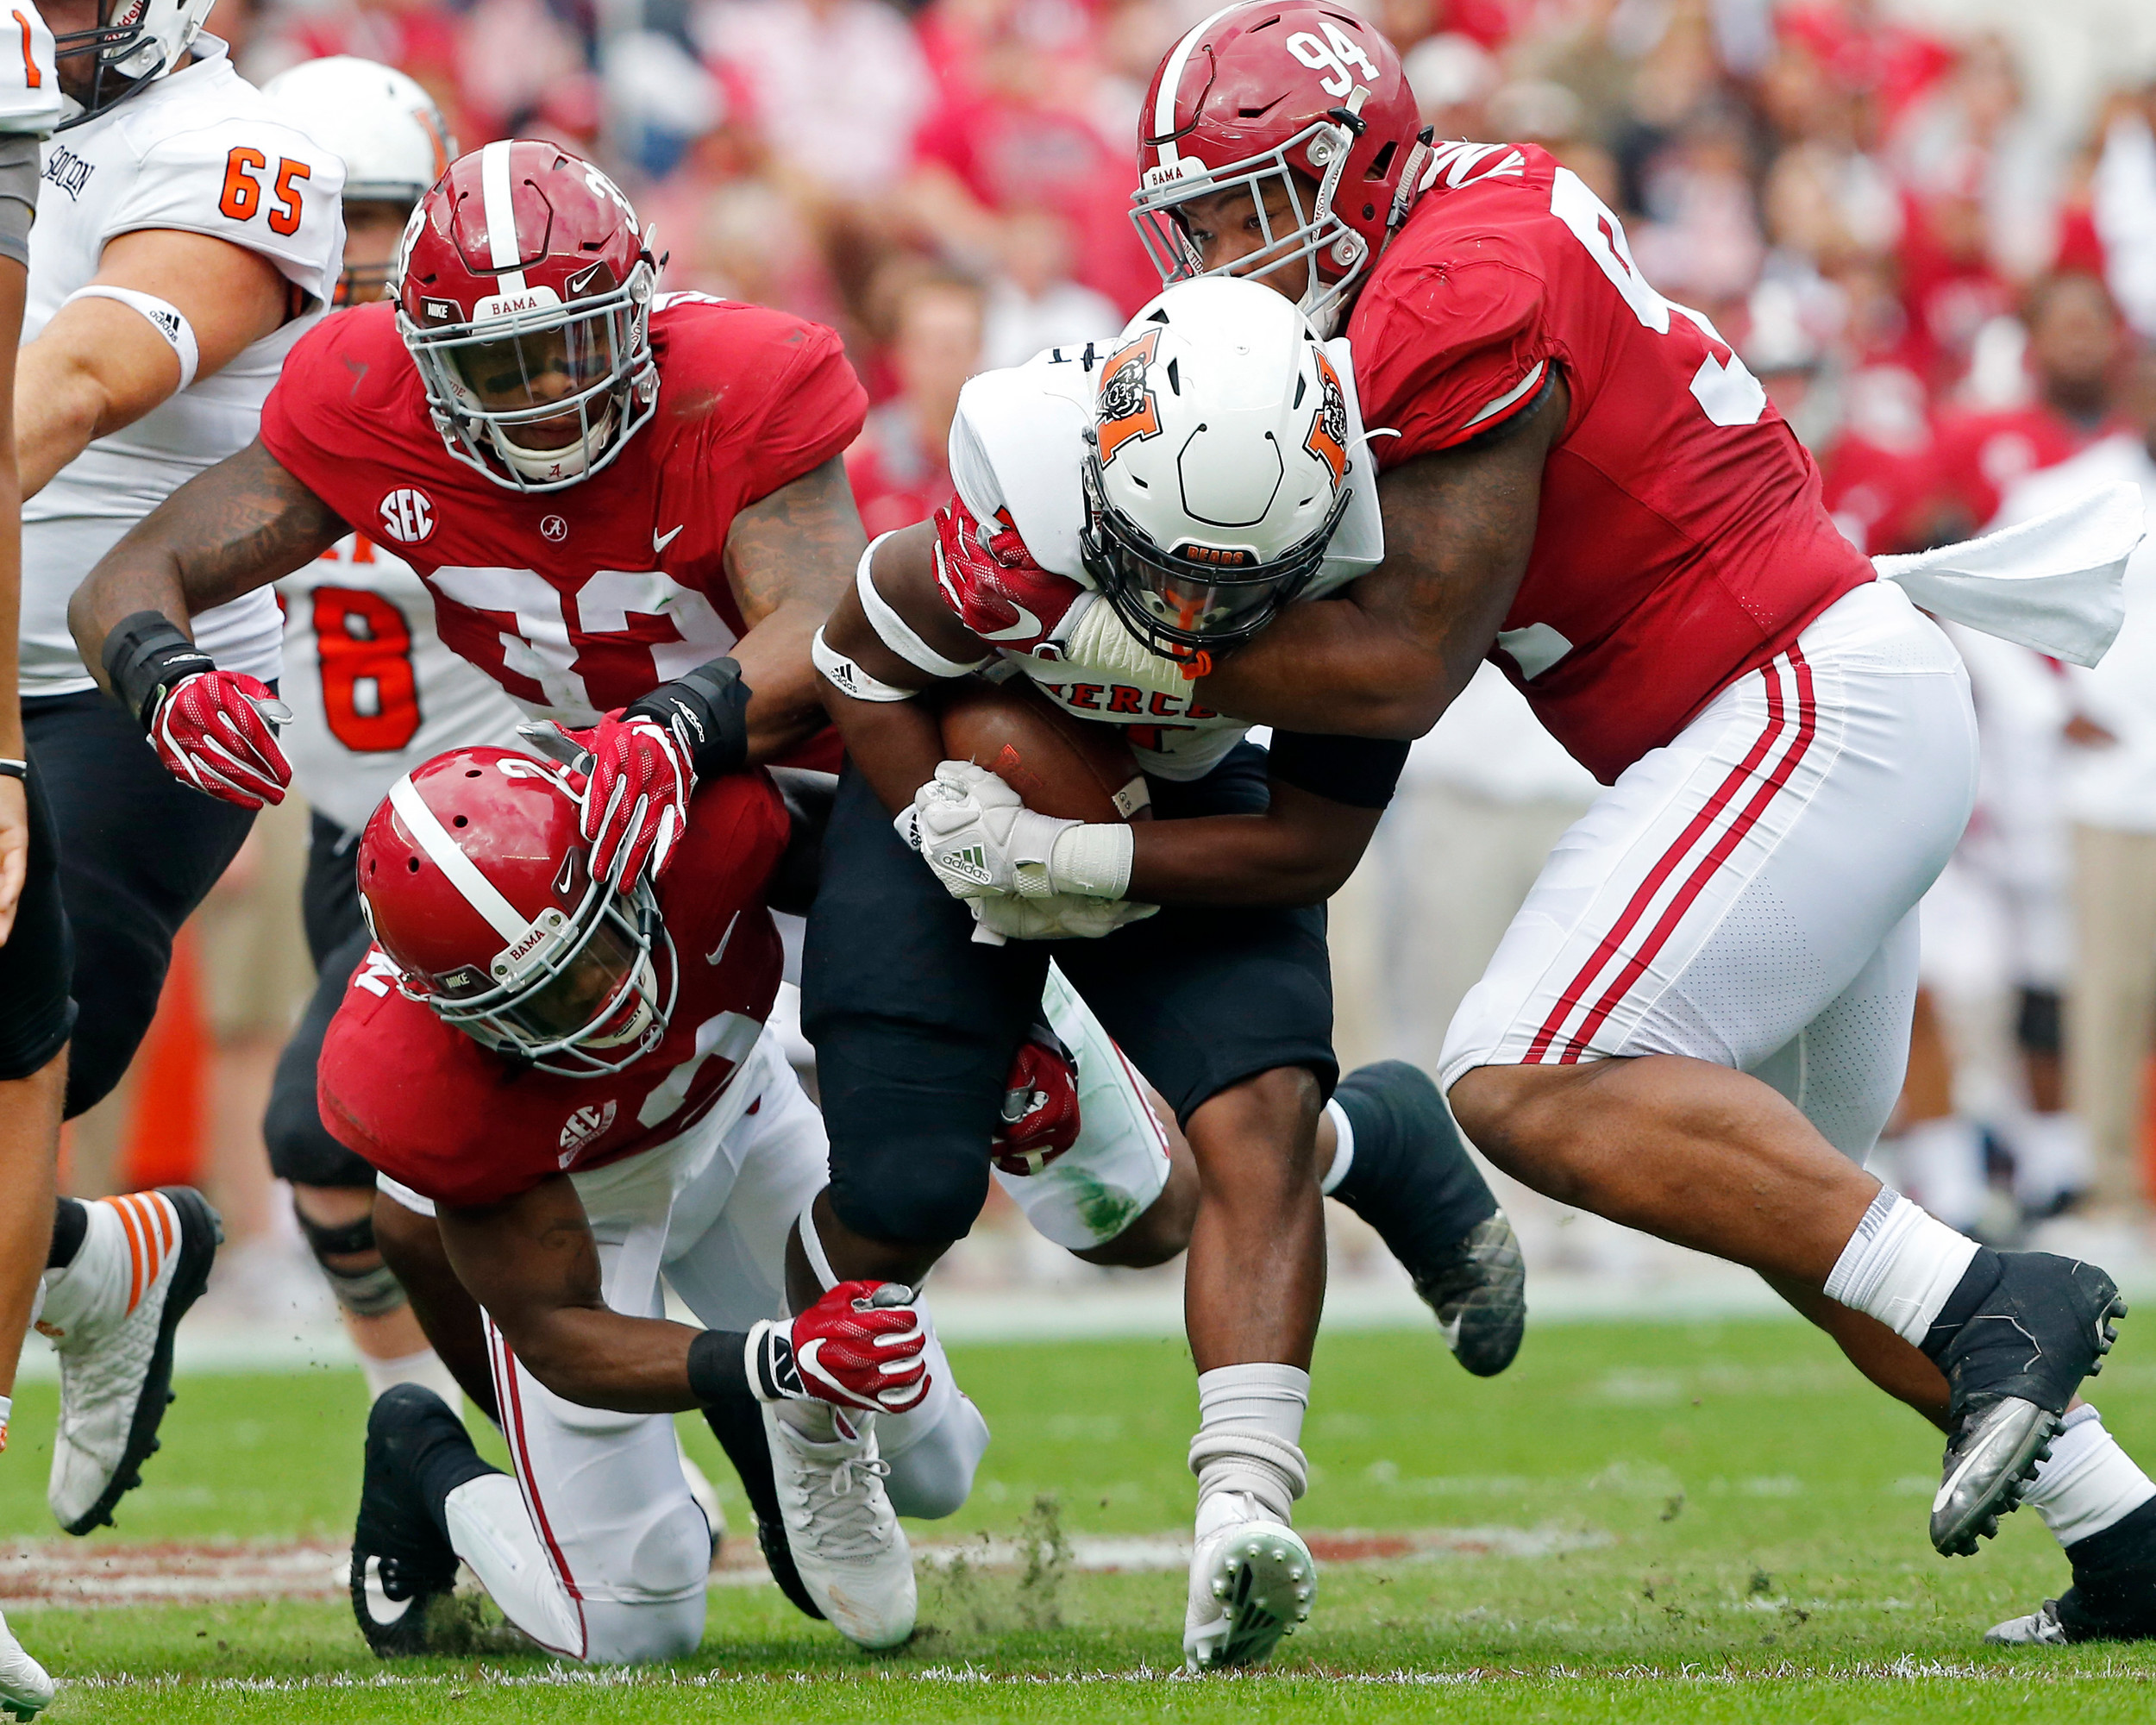 The Alabama defense shut the run game down during the 1st half of the game between the Mercer Bears and the University of Alabama Crimson Tide at Bryant-Denny Stadium in Tuscaloosa, Al on 11/18/2017.